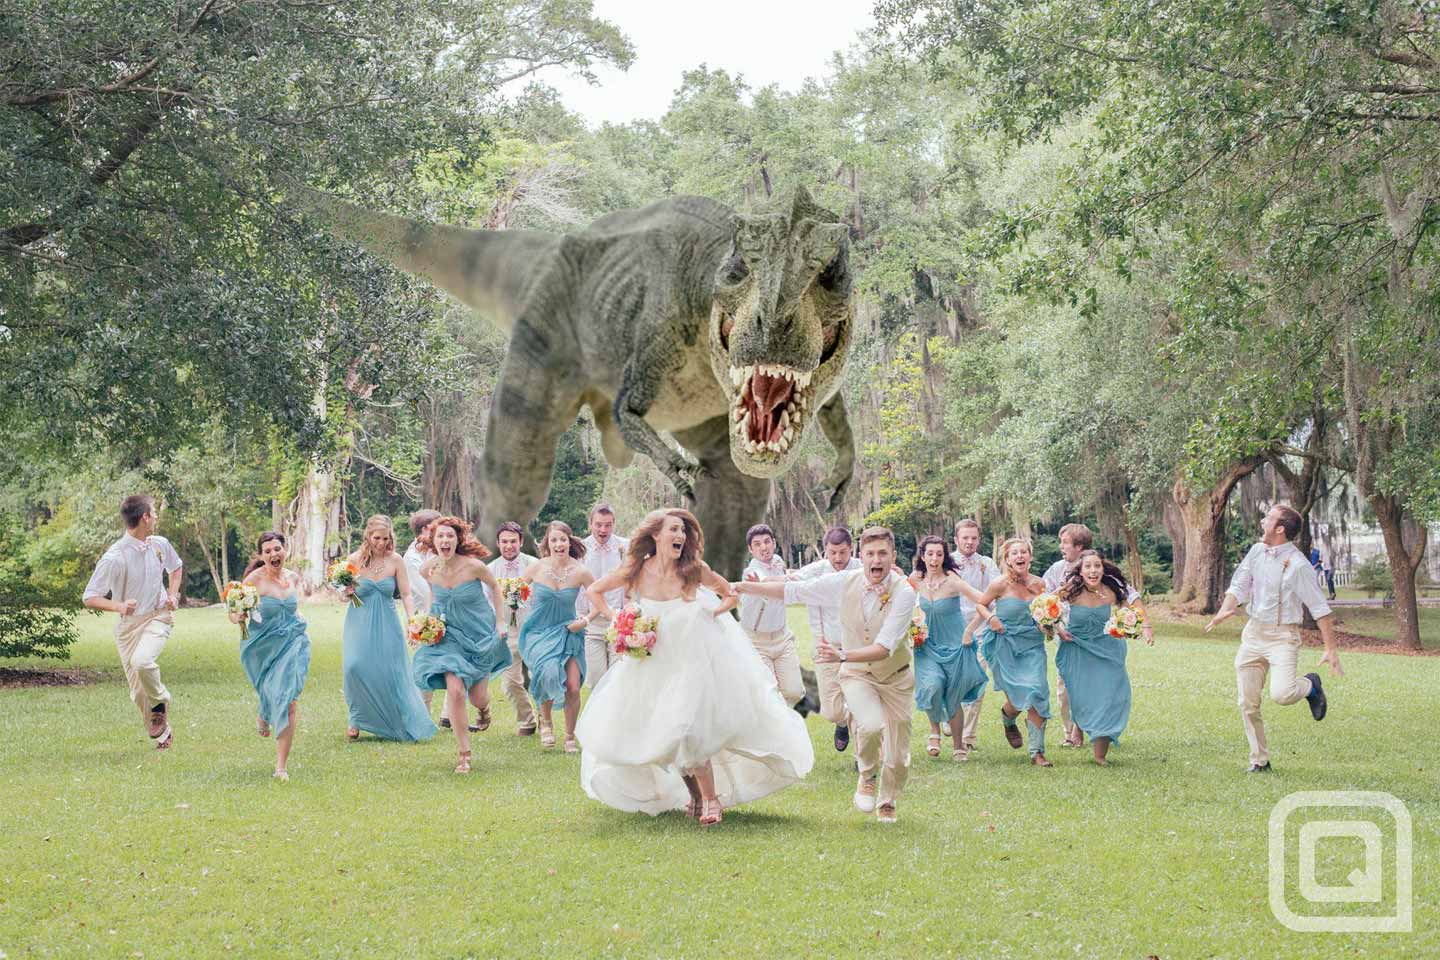 10450Dinosaurs Belong In Your Wedding (Maybe)